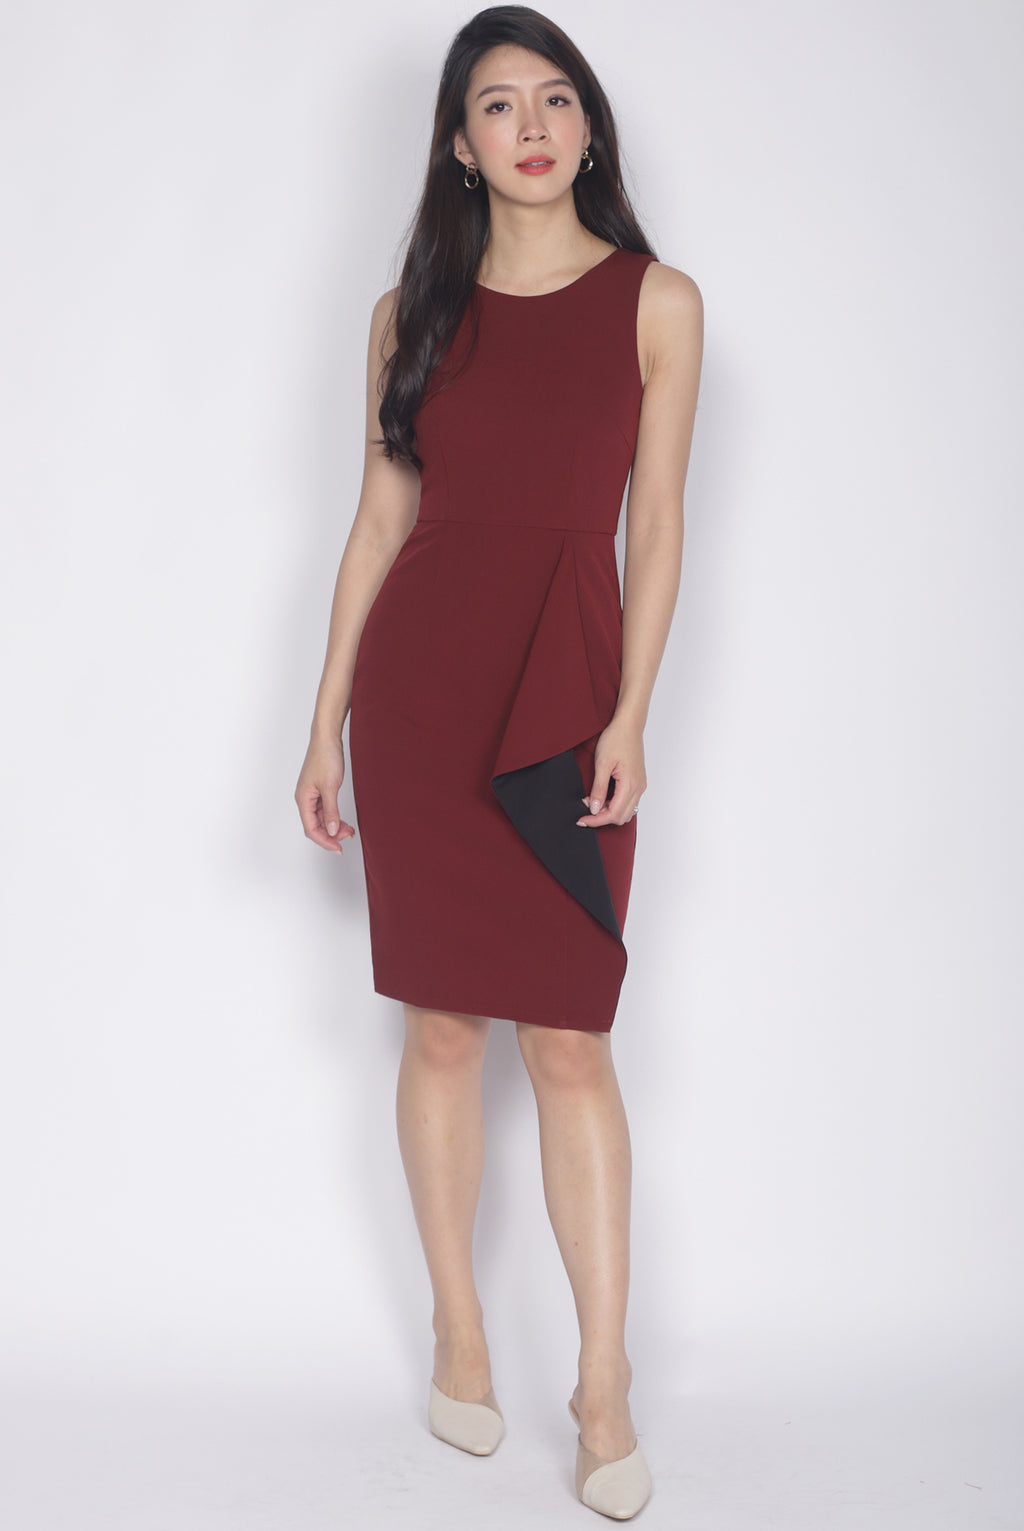 Ninette Waterfall Work Dress In Wine Red